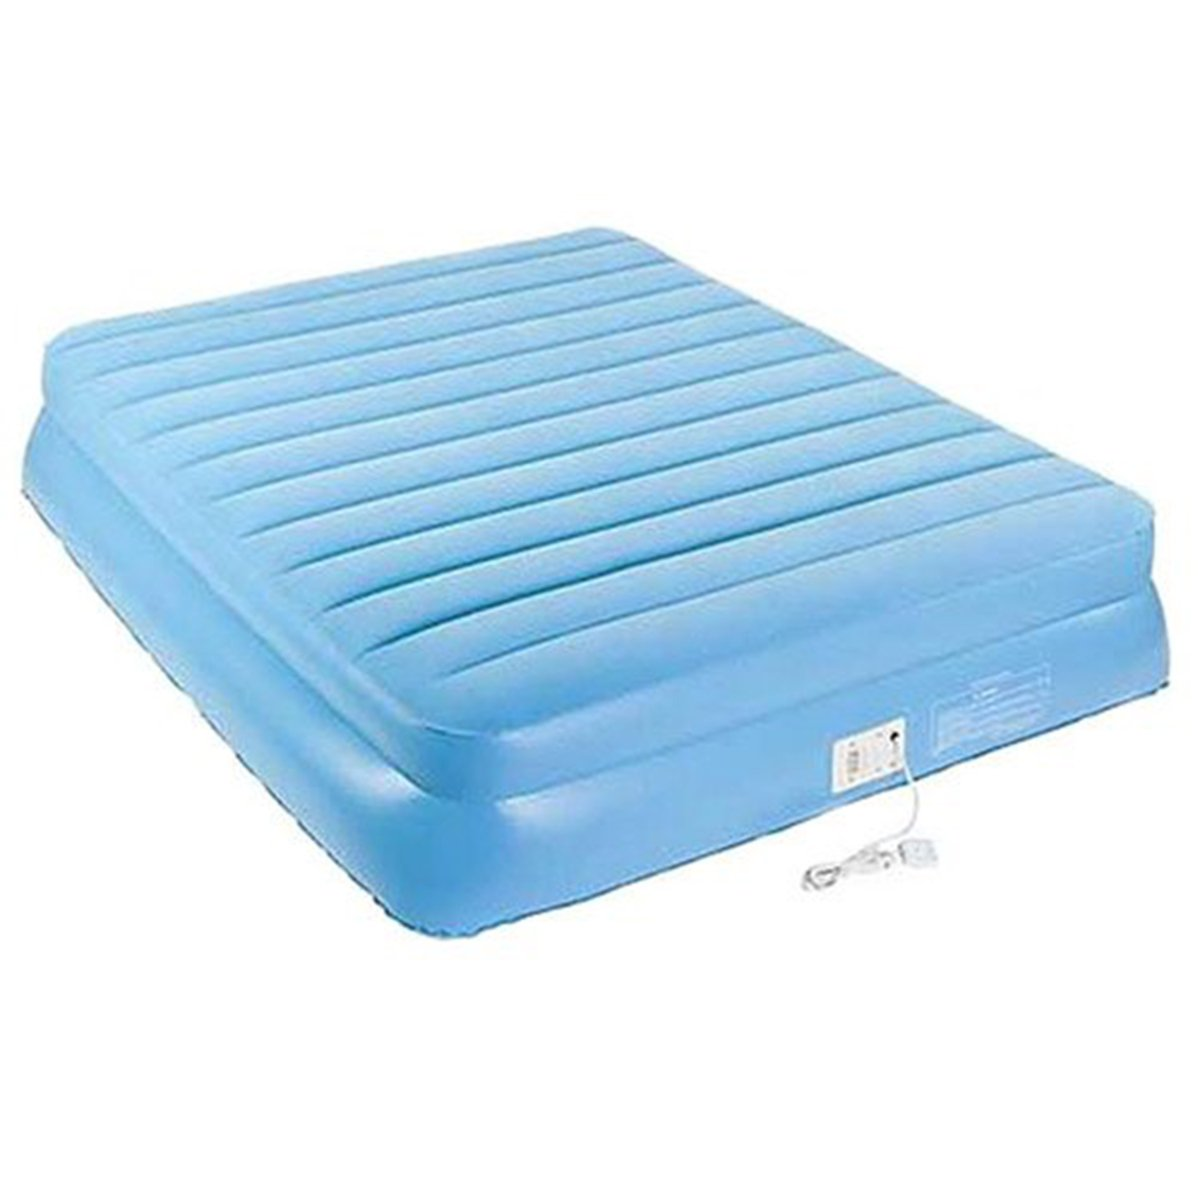 AeroBed Full Size Air Bed with Built-in 120V Pump, 18.5' Raised Bed 18.5 Raised Bed